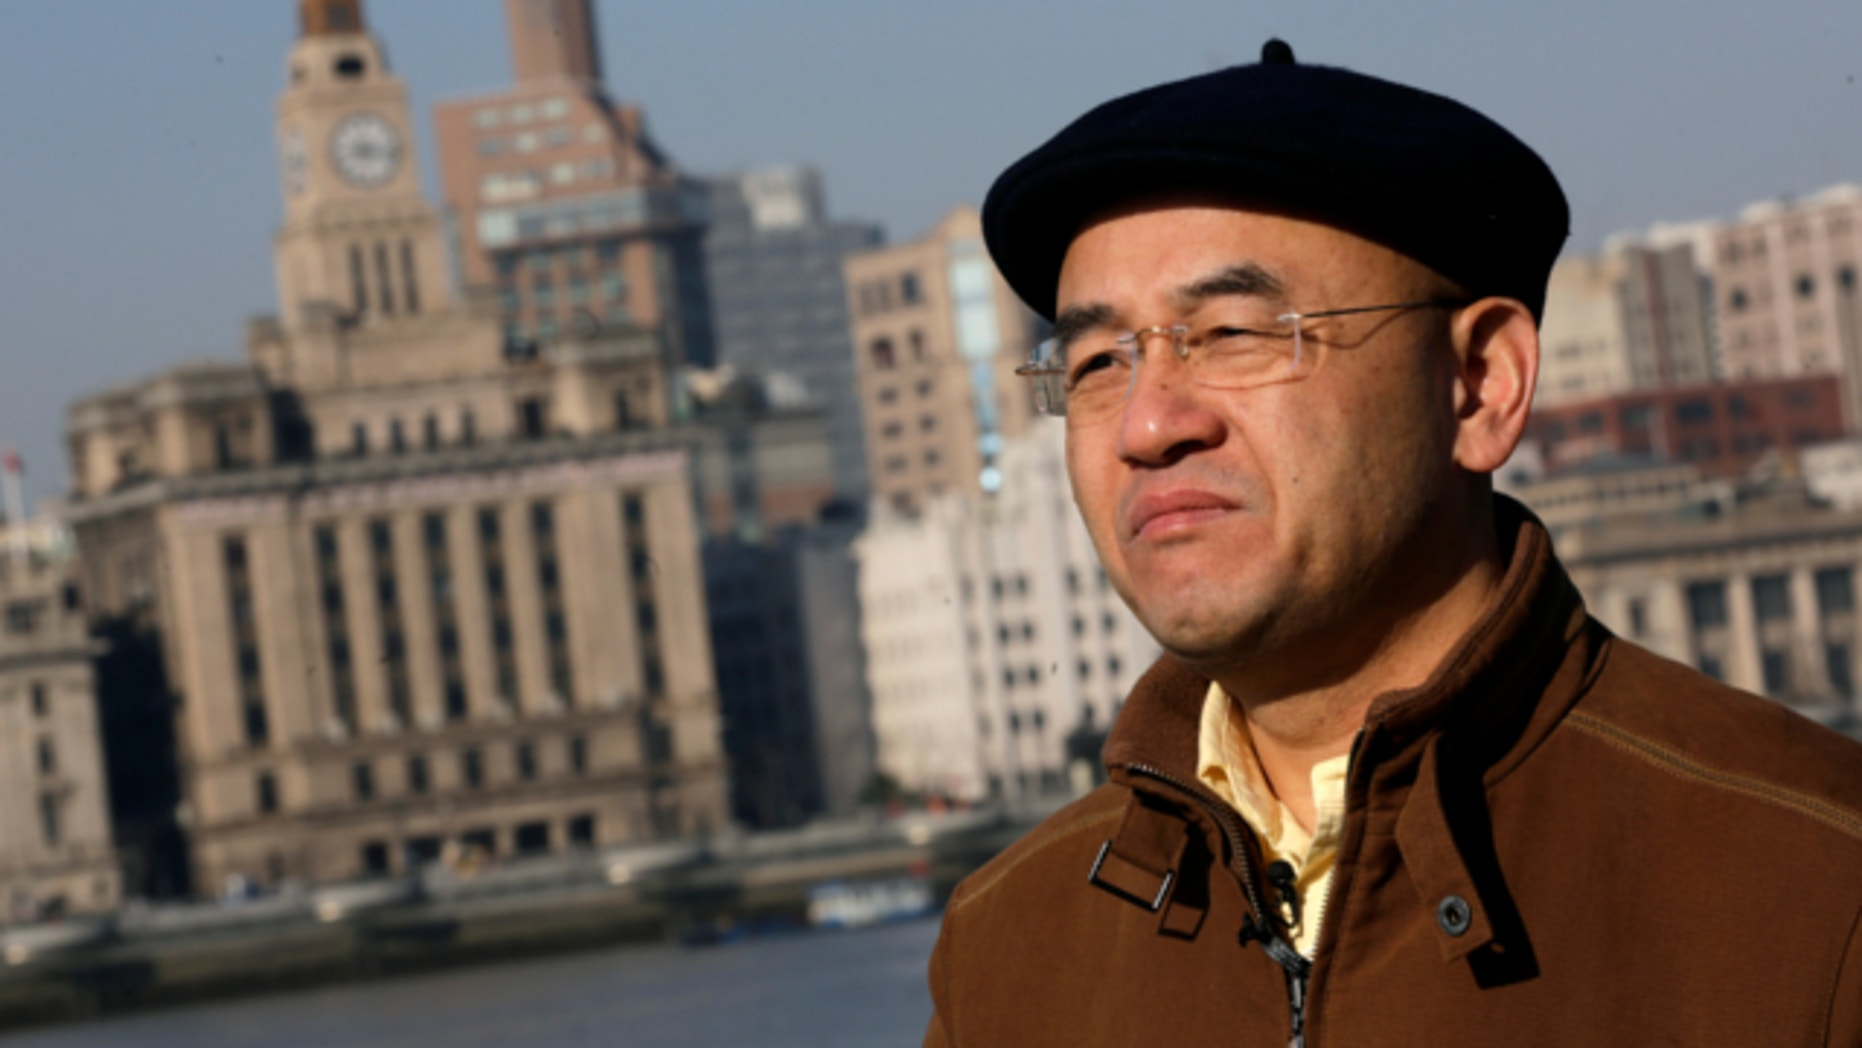 Jan. 28, 2013: Chinese-born U.S. scientist Hu Zhicheng stands at the waterfront promenade along the Huangpu River in Shanghai, China.